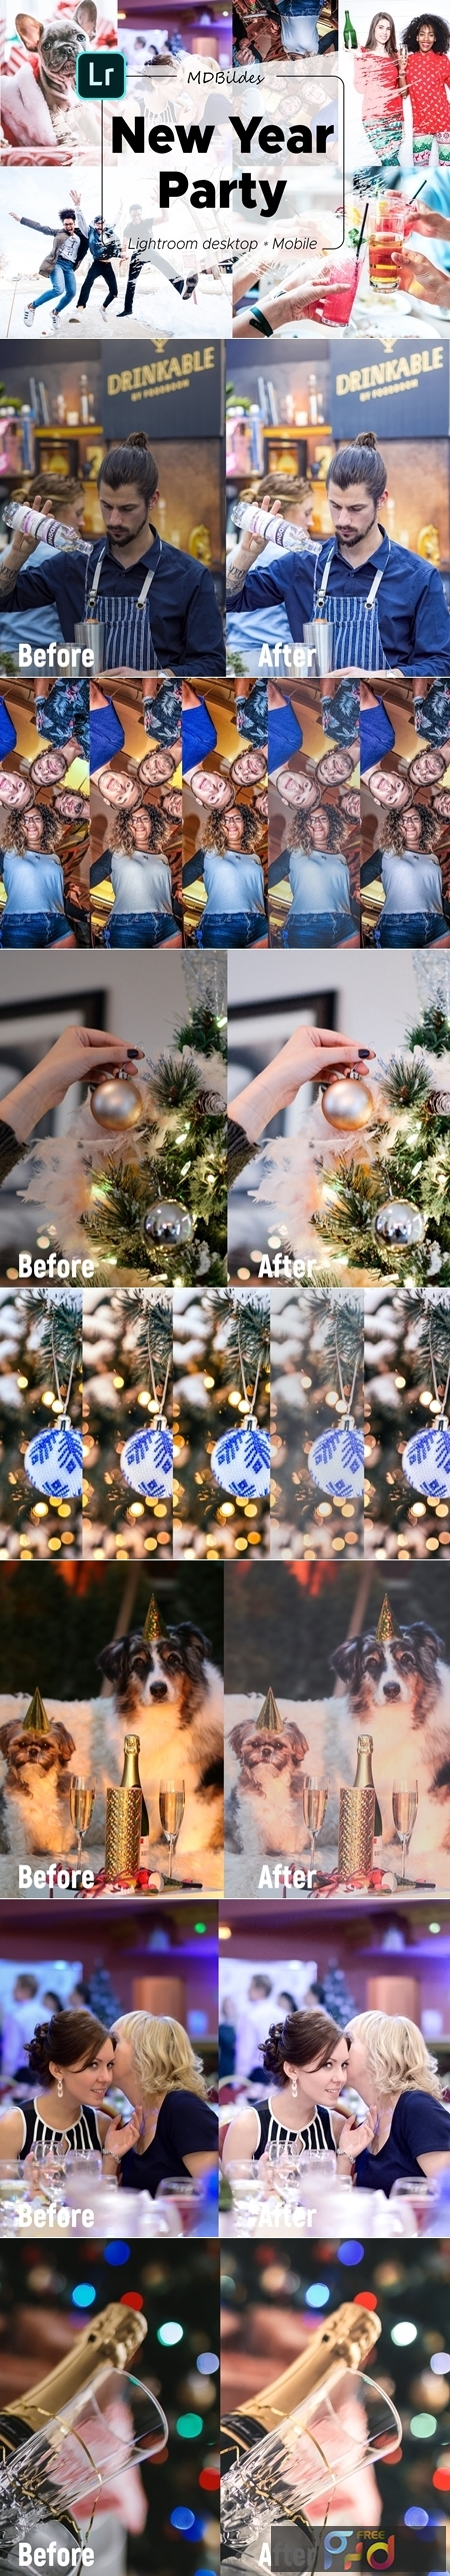 5 Lightroom Presets, New Year Party 4424549 1